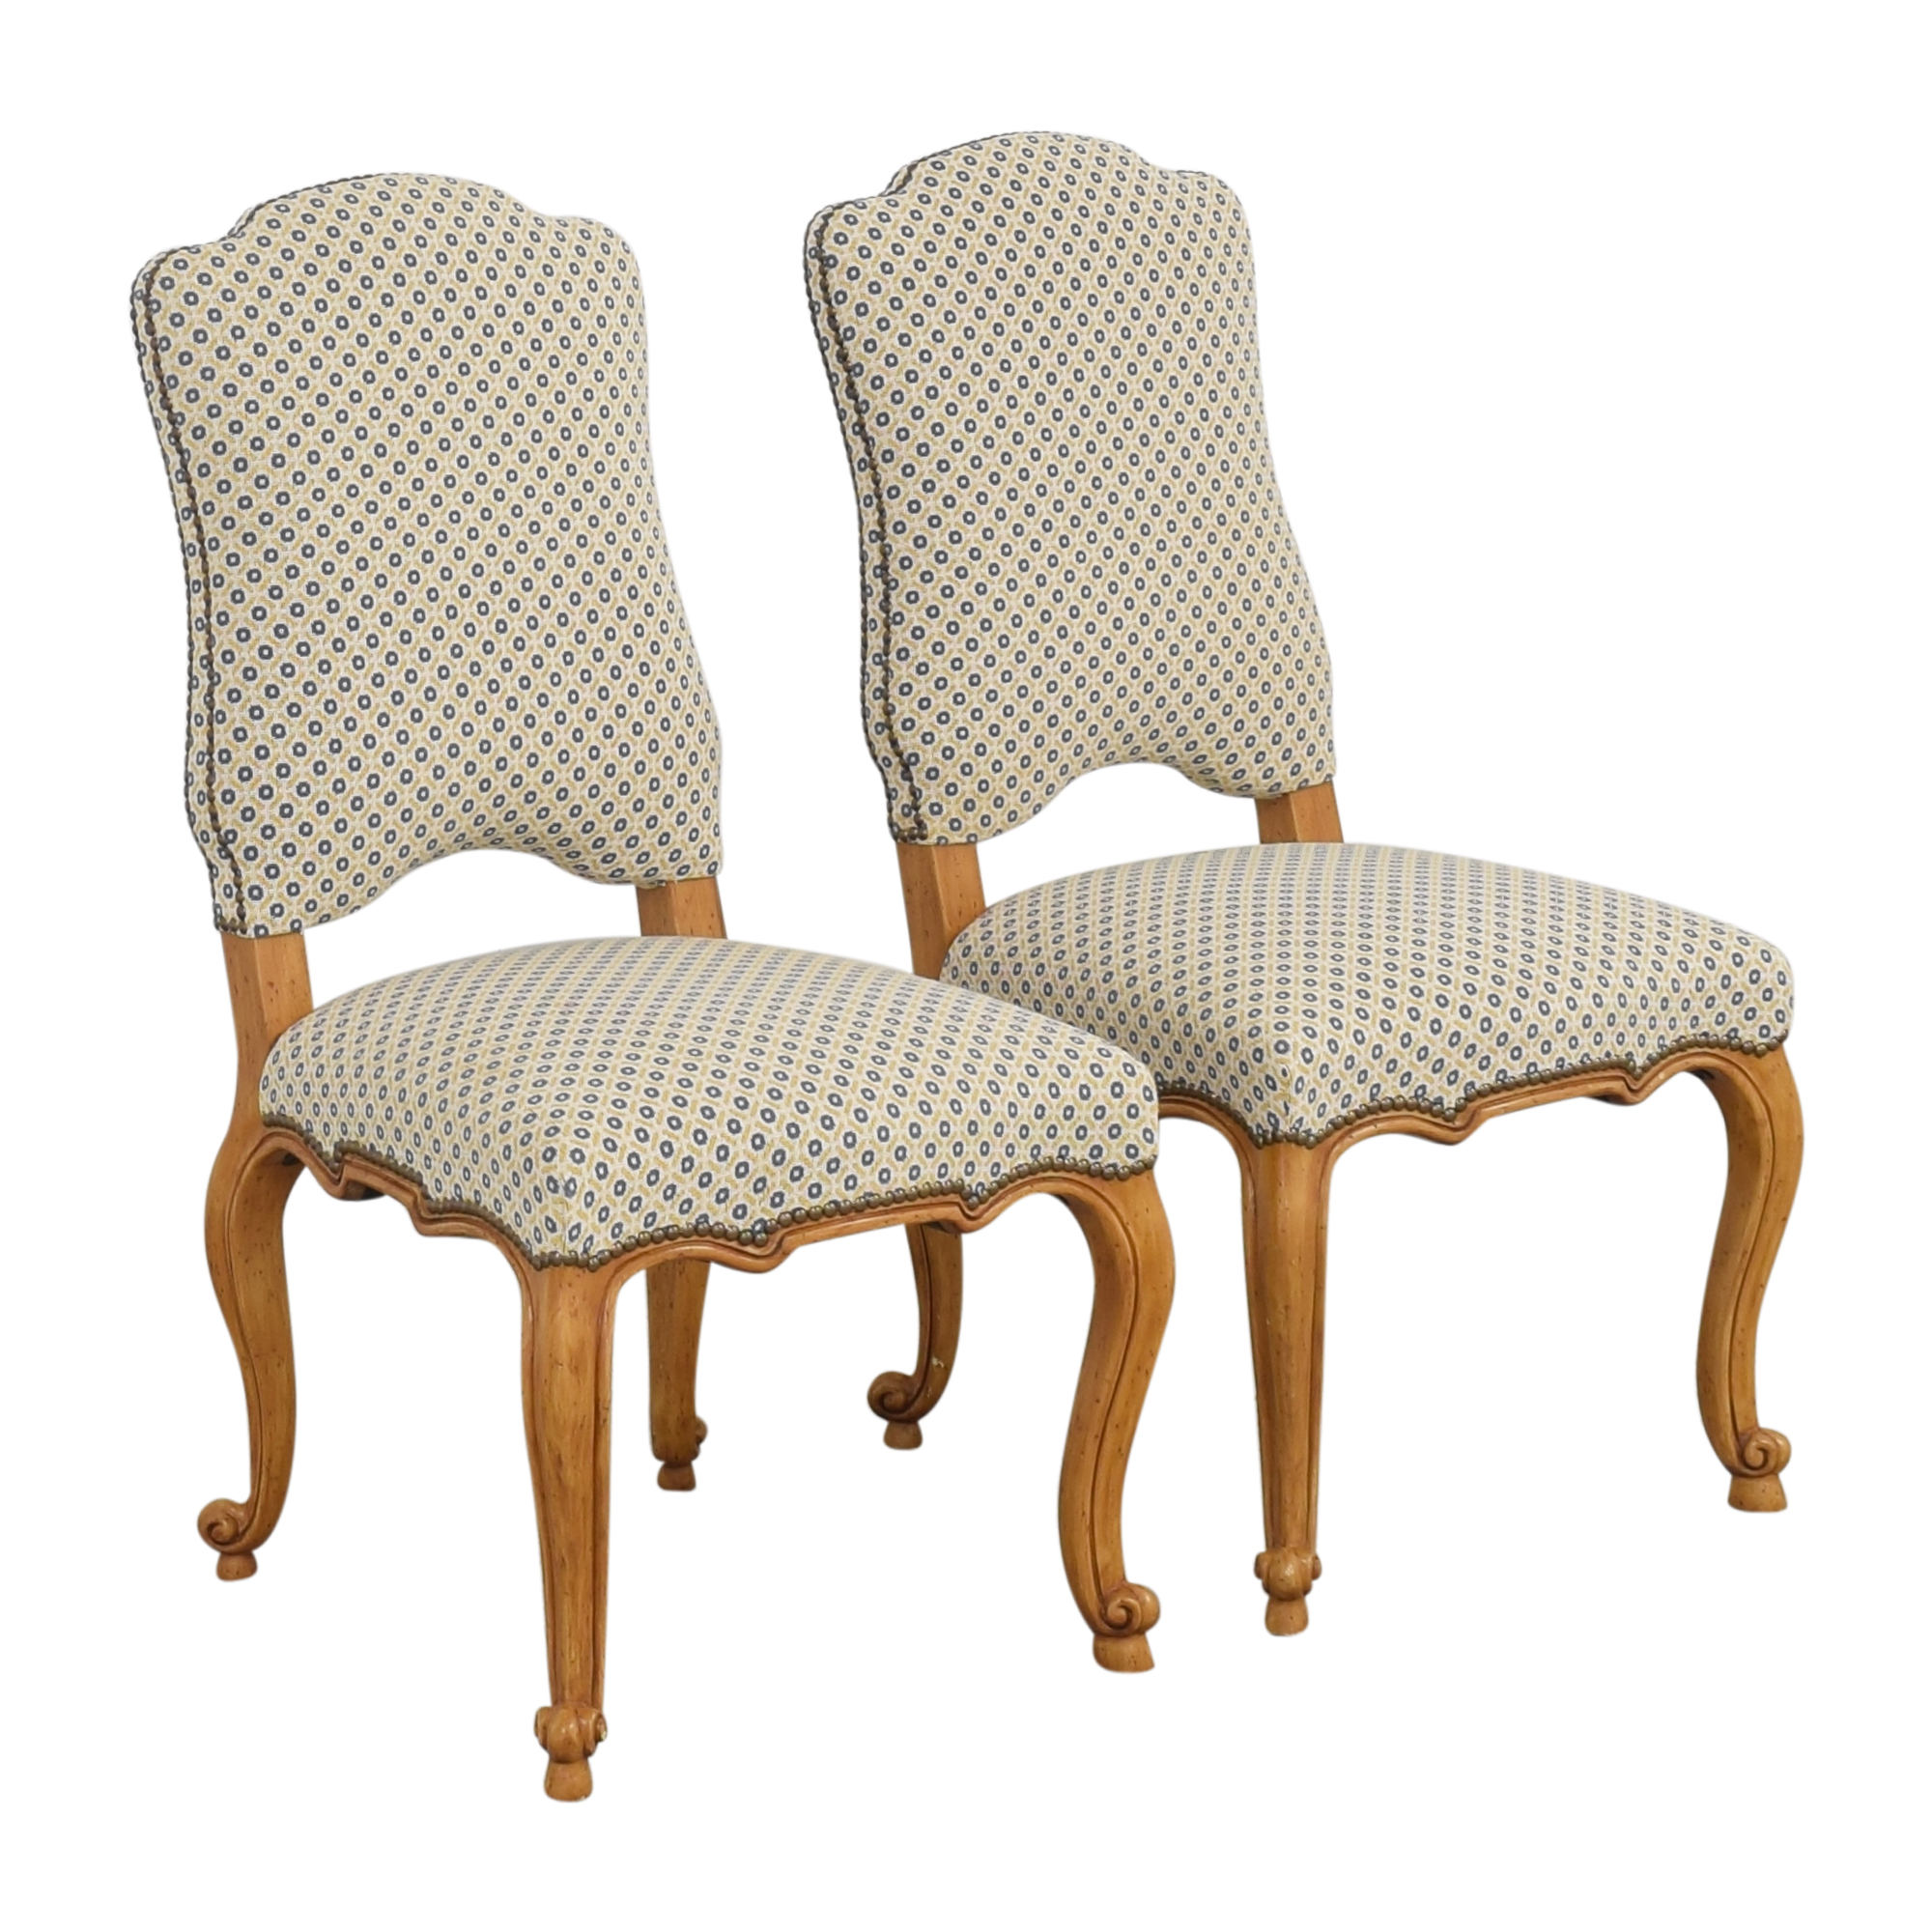 Minton-Spidell Regence Dining Side Chairs Minton-Spidell